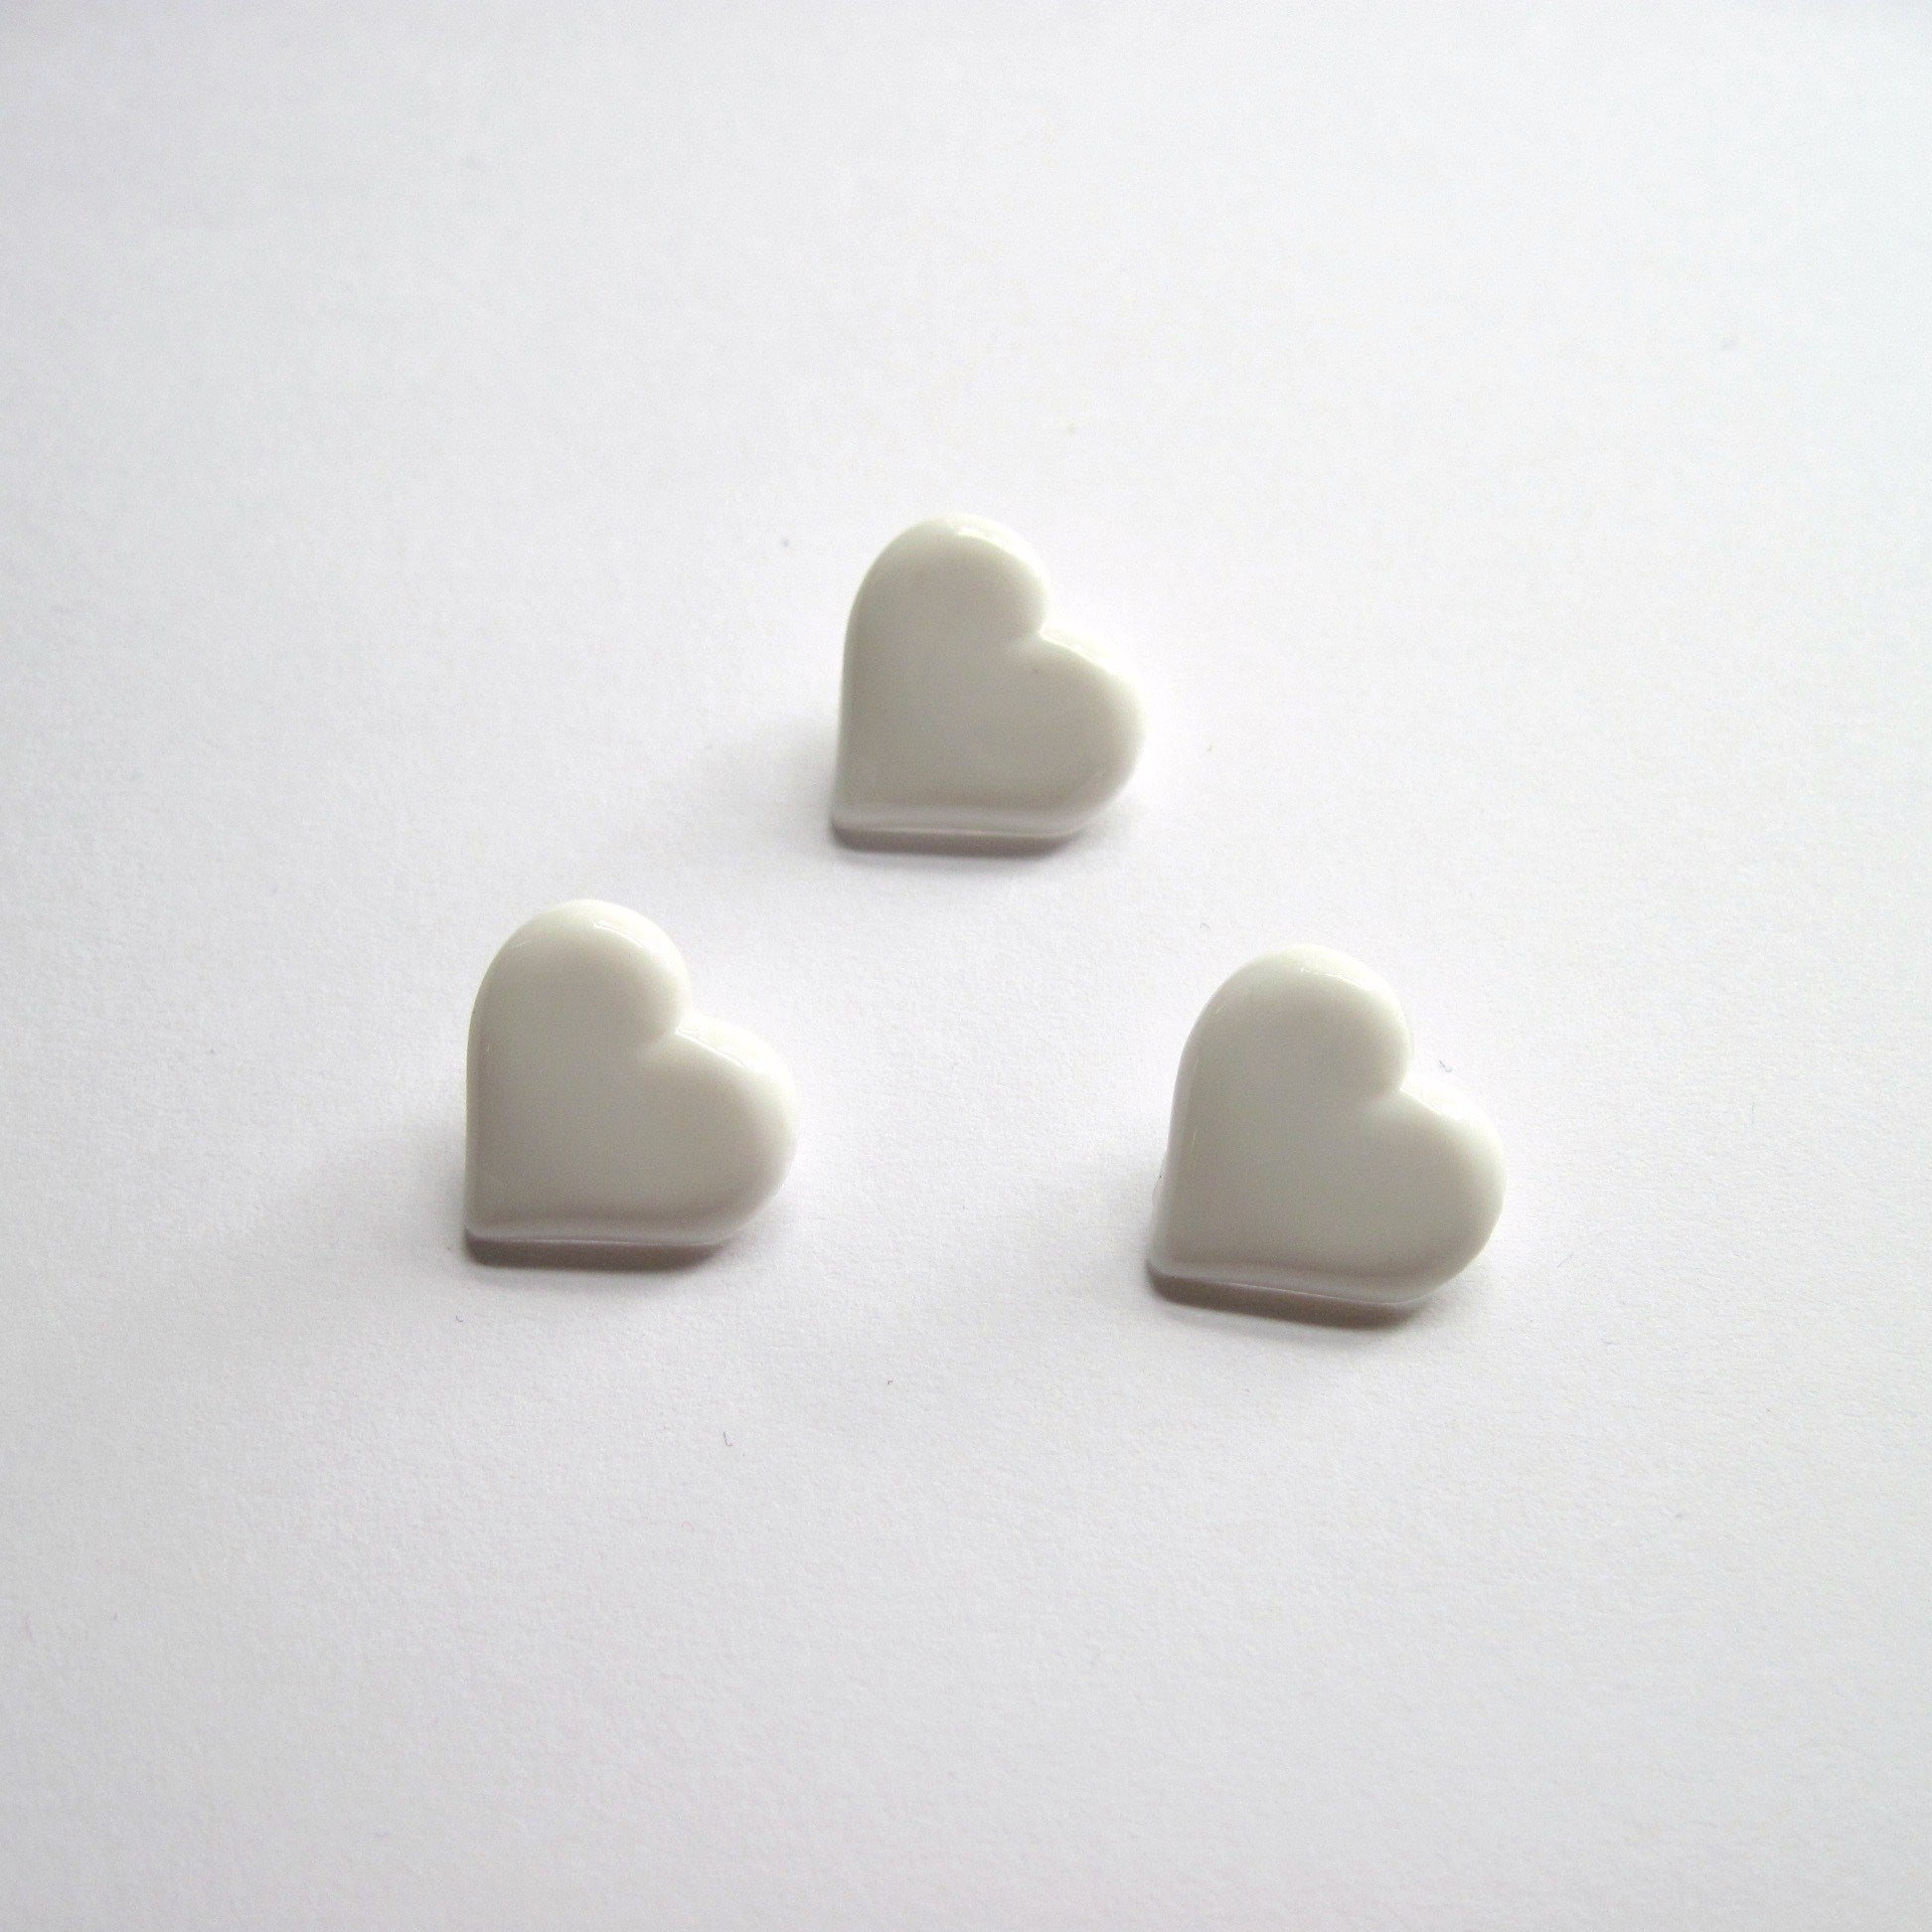 Heart shank buttons